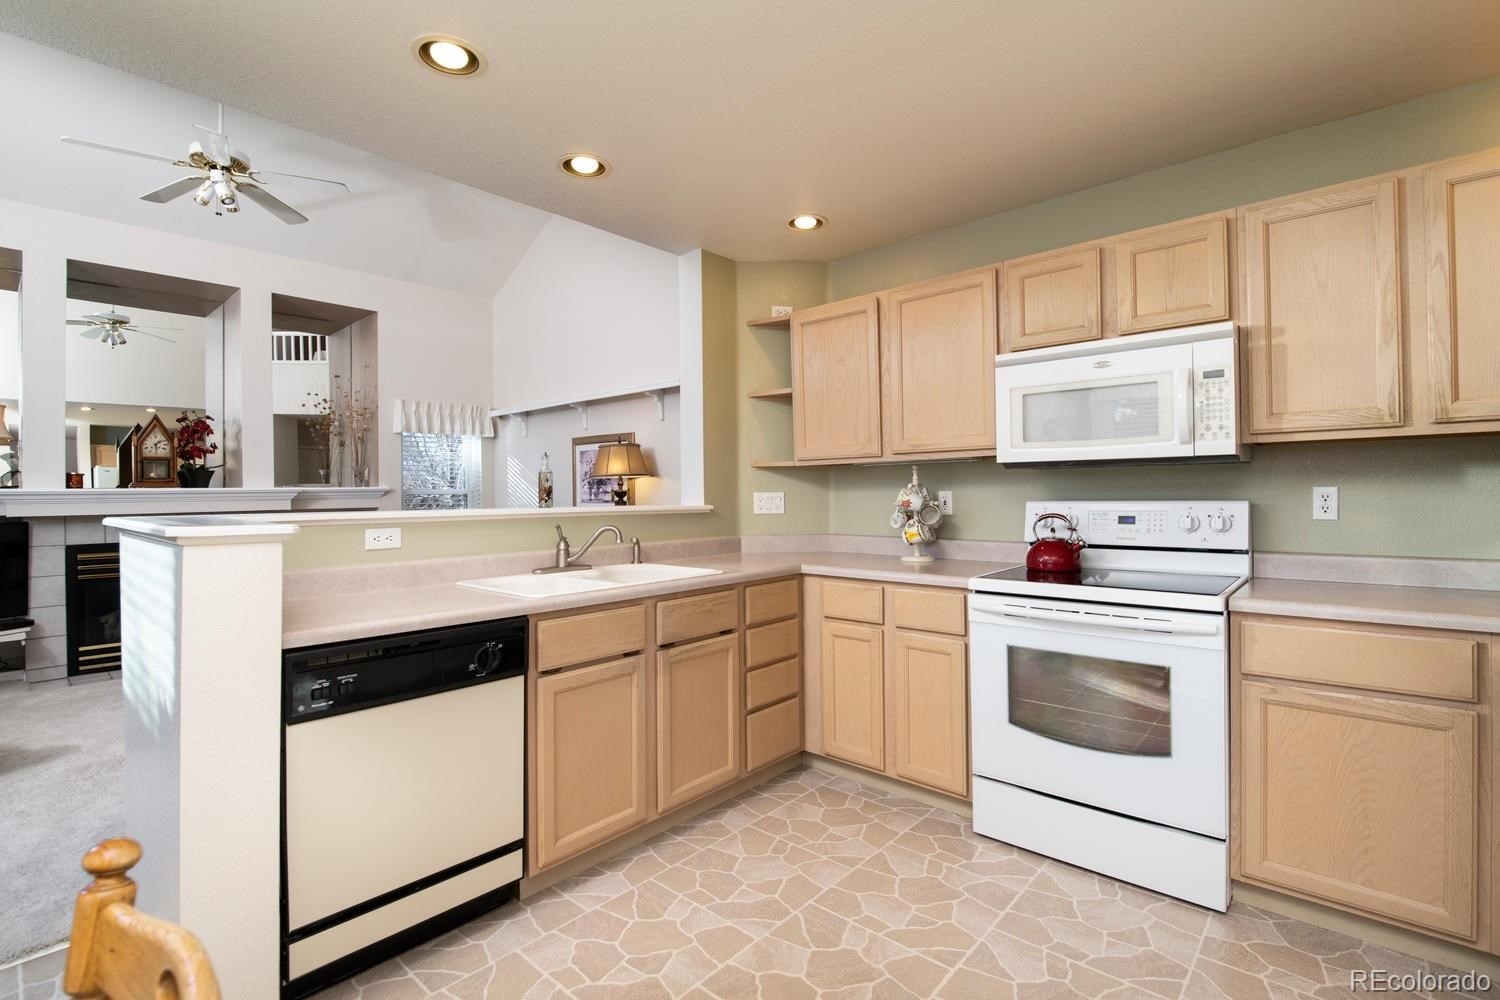 MLS# 8680648 - 11 - 8513 W 94th Avenue, Westminster, CO 80021